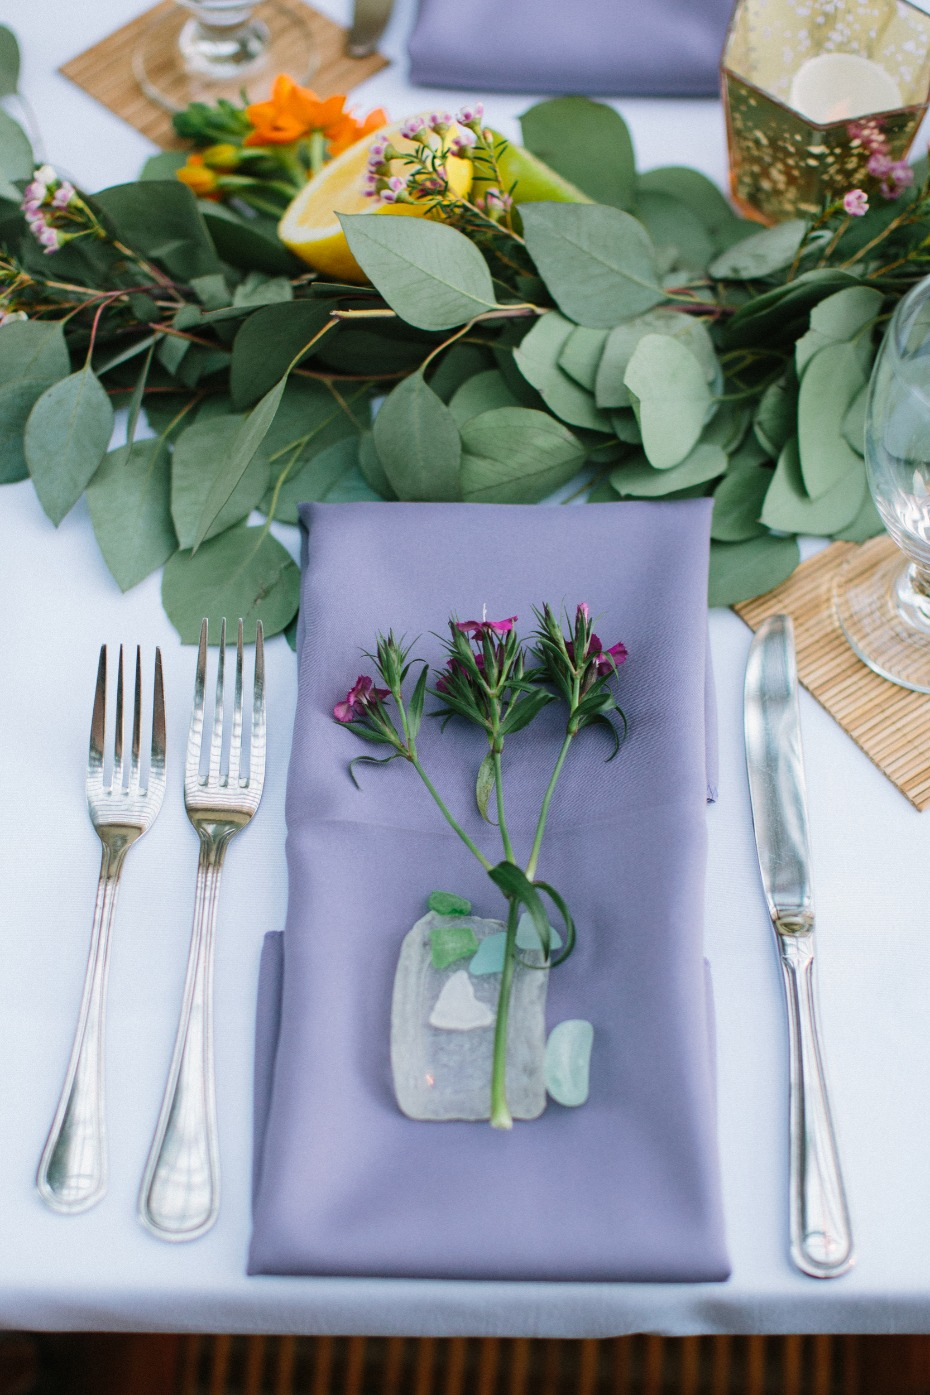 Beach glass place setting